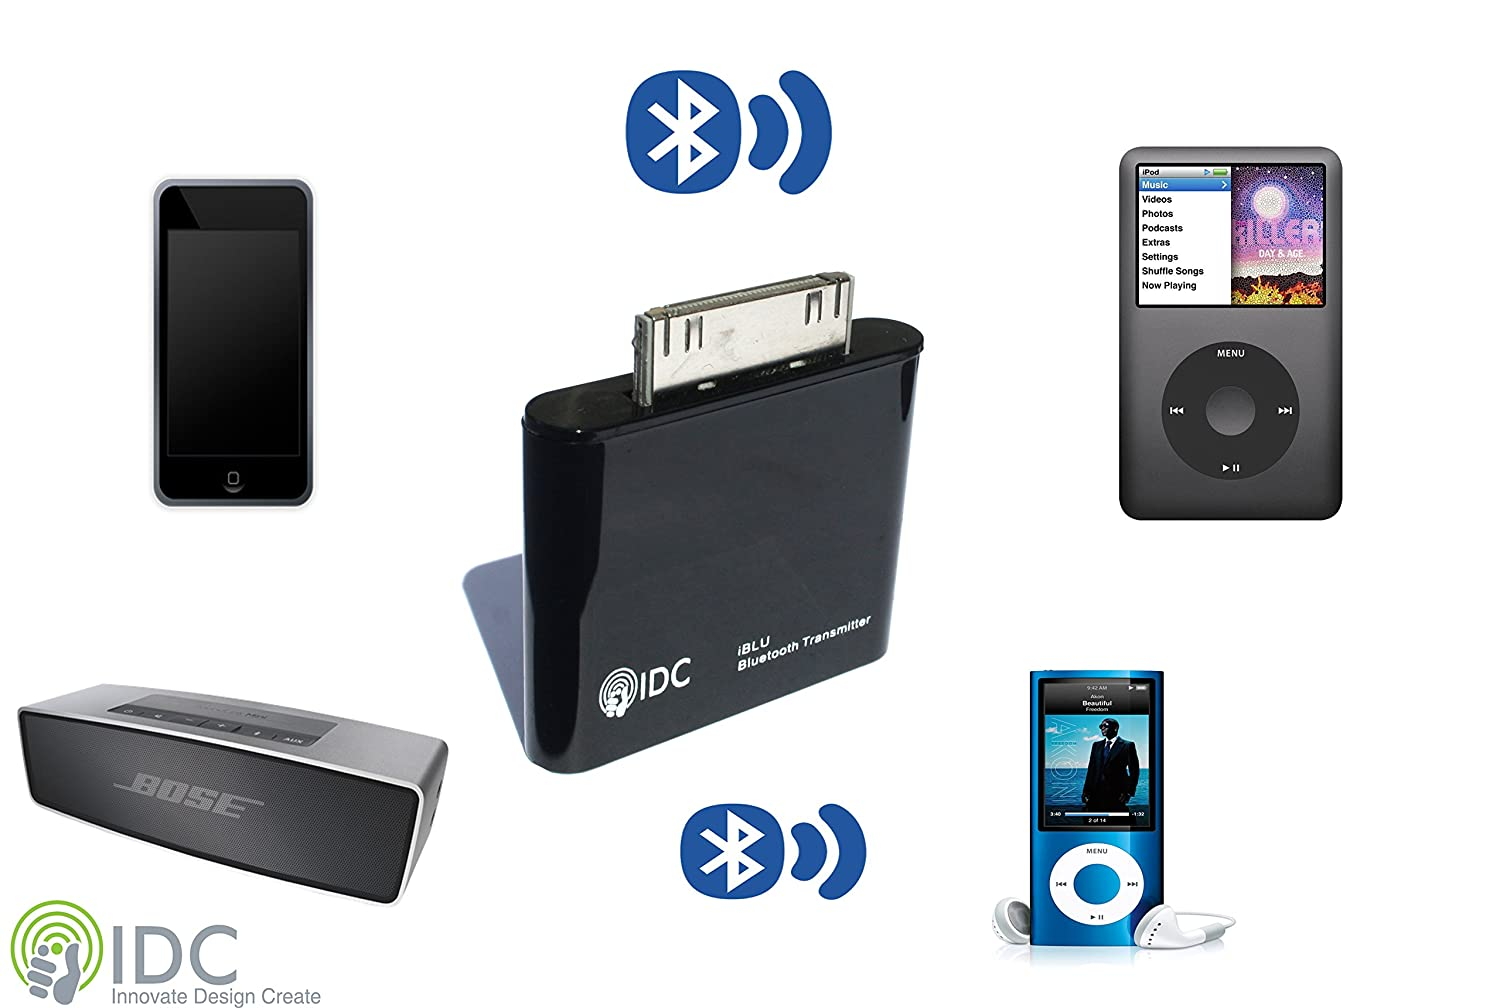 ipod classic instruction manual download